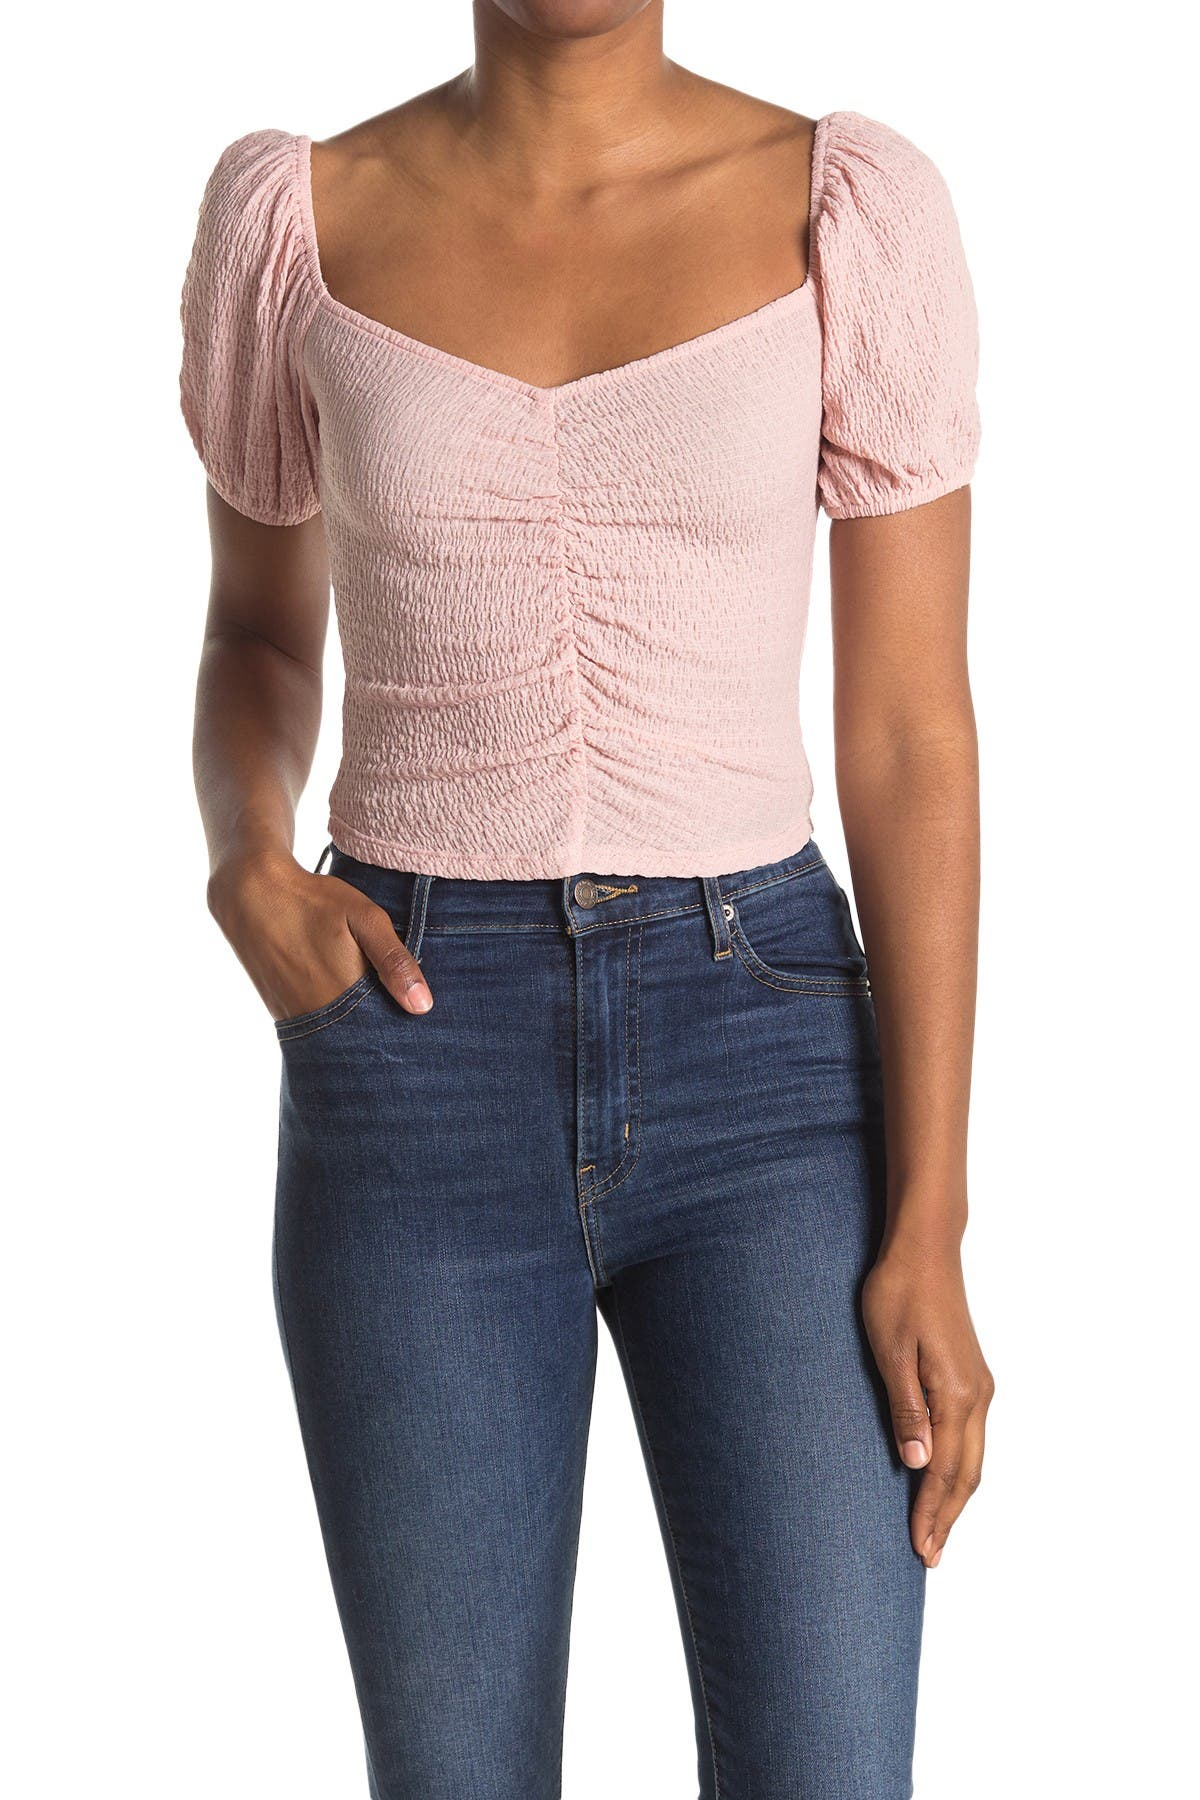 Image of Elodie Textured Knit Ruched Crop Top